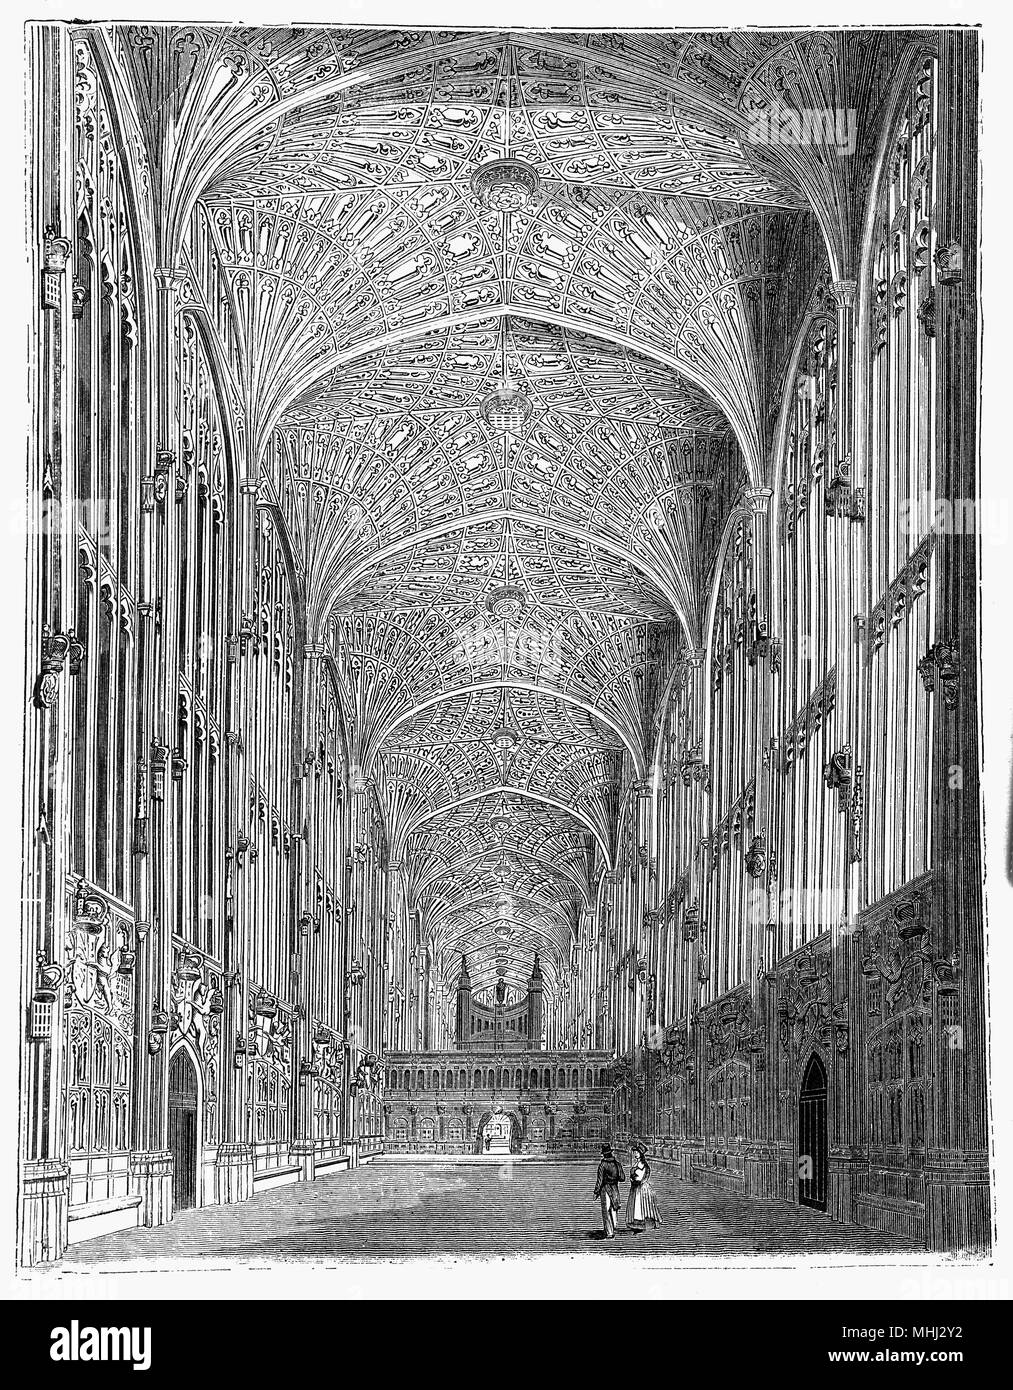 The Interior of King's College Chapel in the University of Cambridge. Considered to be one of the finest examples of late Perpendicular Gothic English architecture, it was built in phases by a succession of kings of England from 1446 to 1515, a period which spanned the Wars of the Roses. The chapel's large stained glass windows were not completed until 1531, and its early Renaissance rood screen was erected in 1532–36. The chapel is an active house of worship, and home of the King's College Choir. Stock Photo